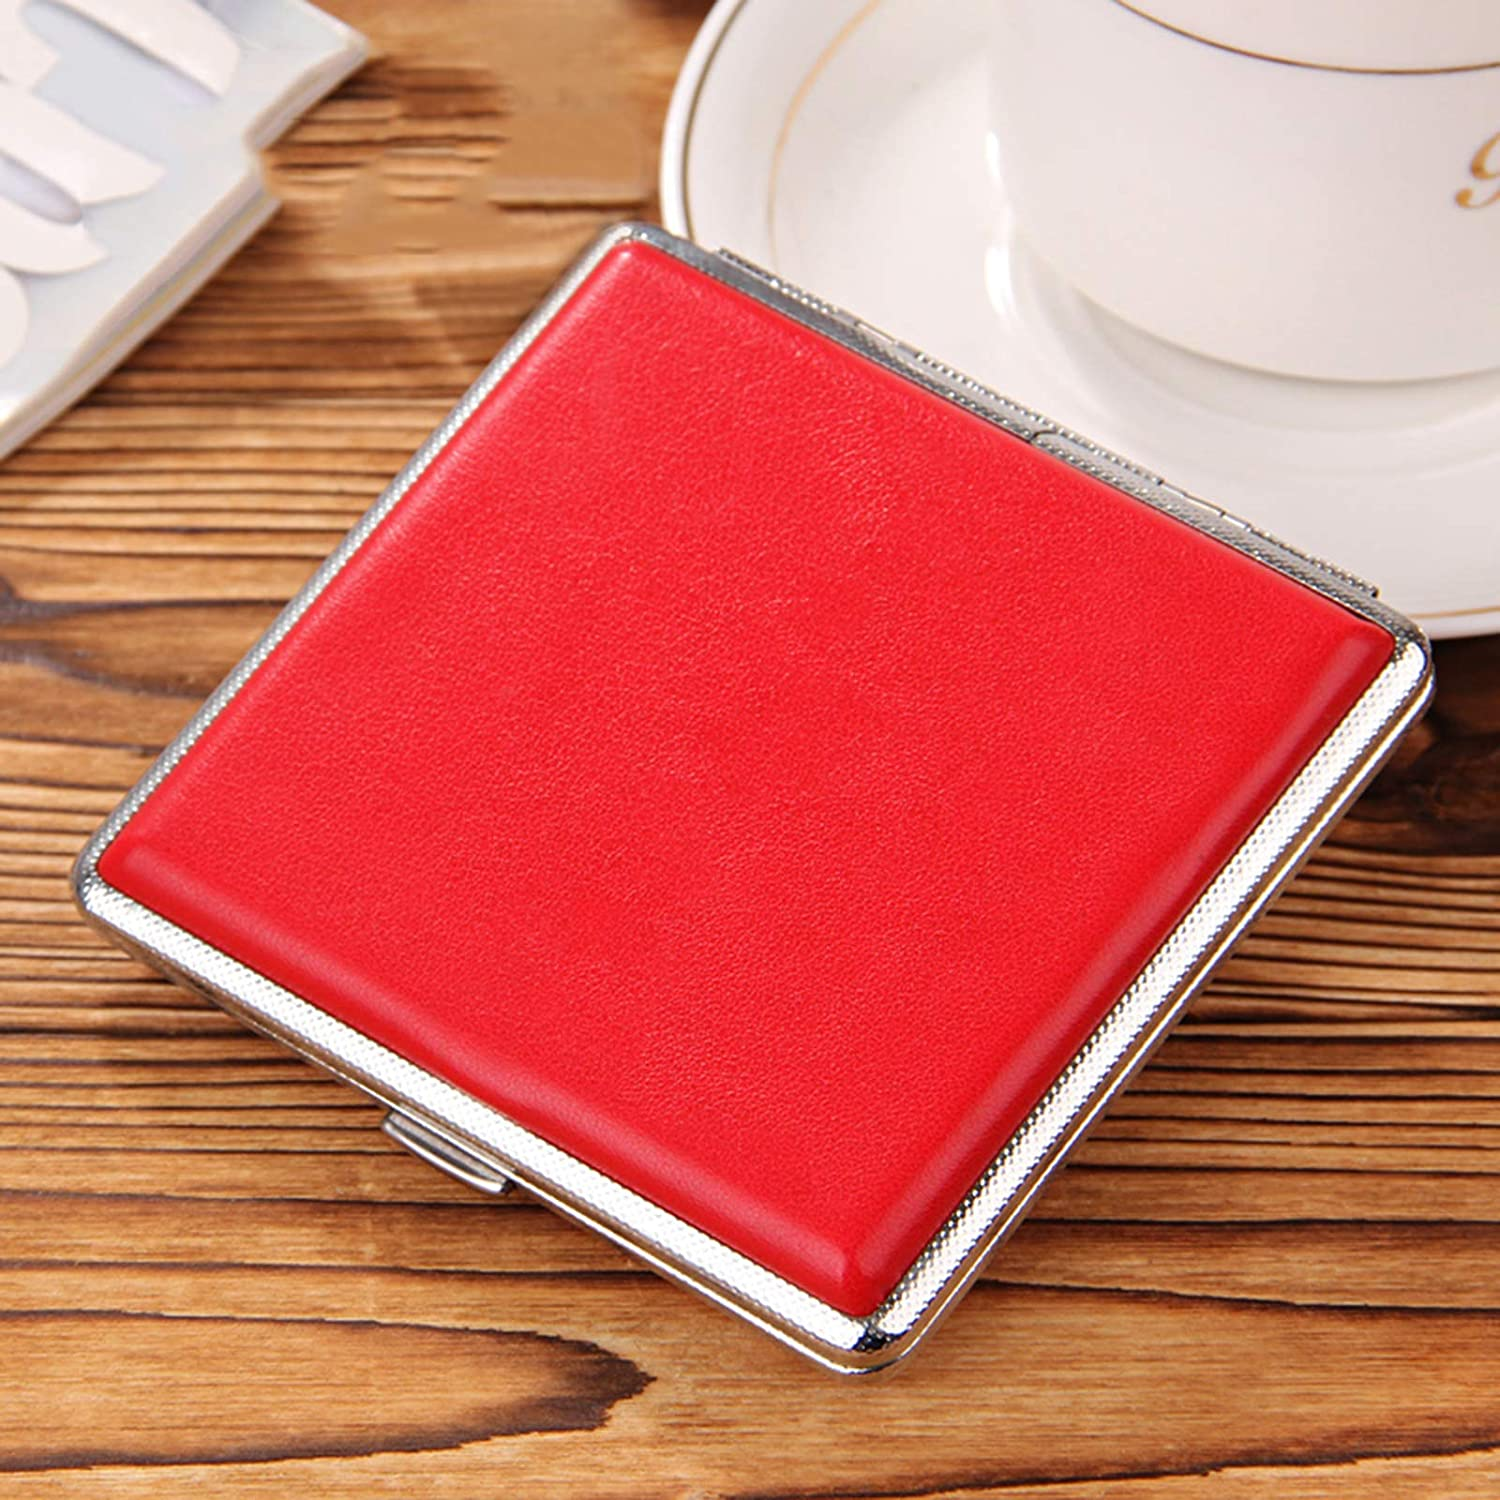 HEKQ Leather Cigarette Case Best Gift Women A for Online limited Year-end annual account product Anti-Pressure